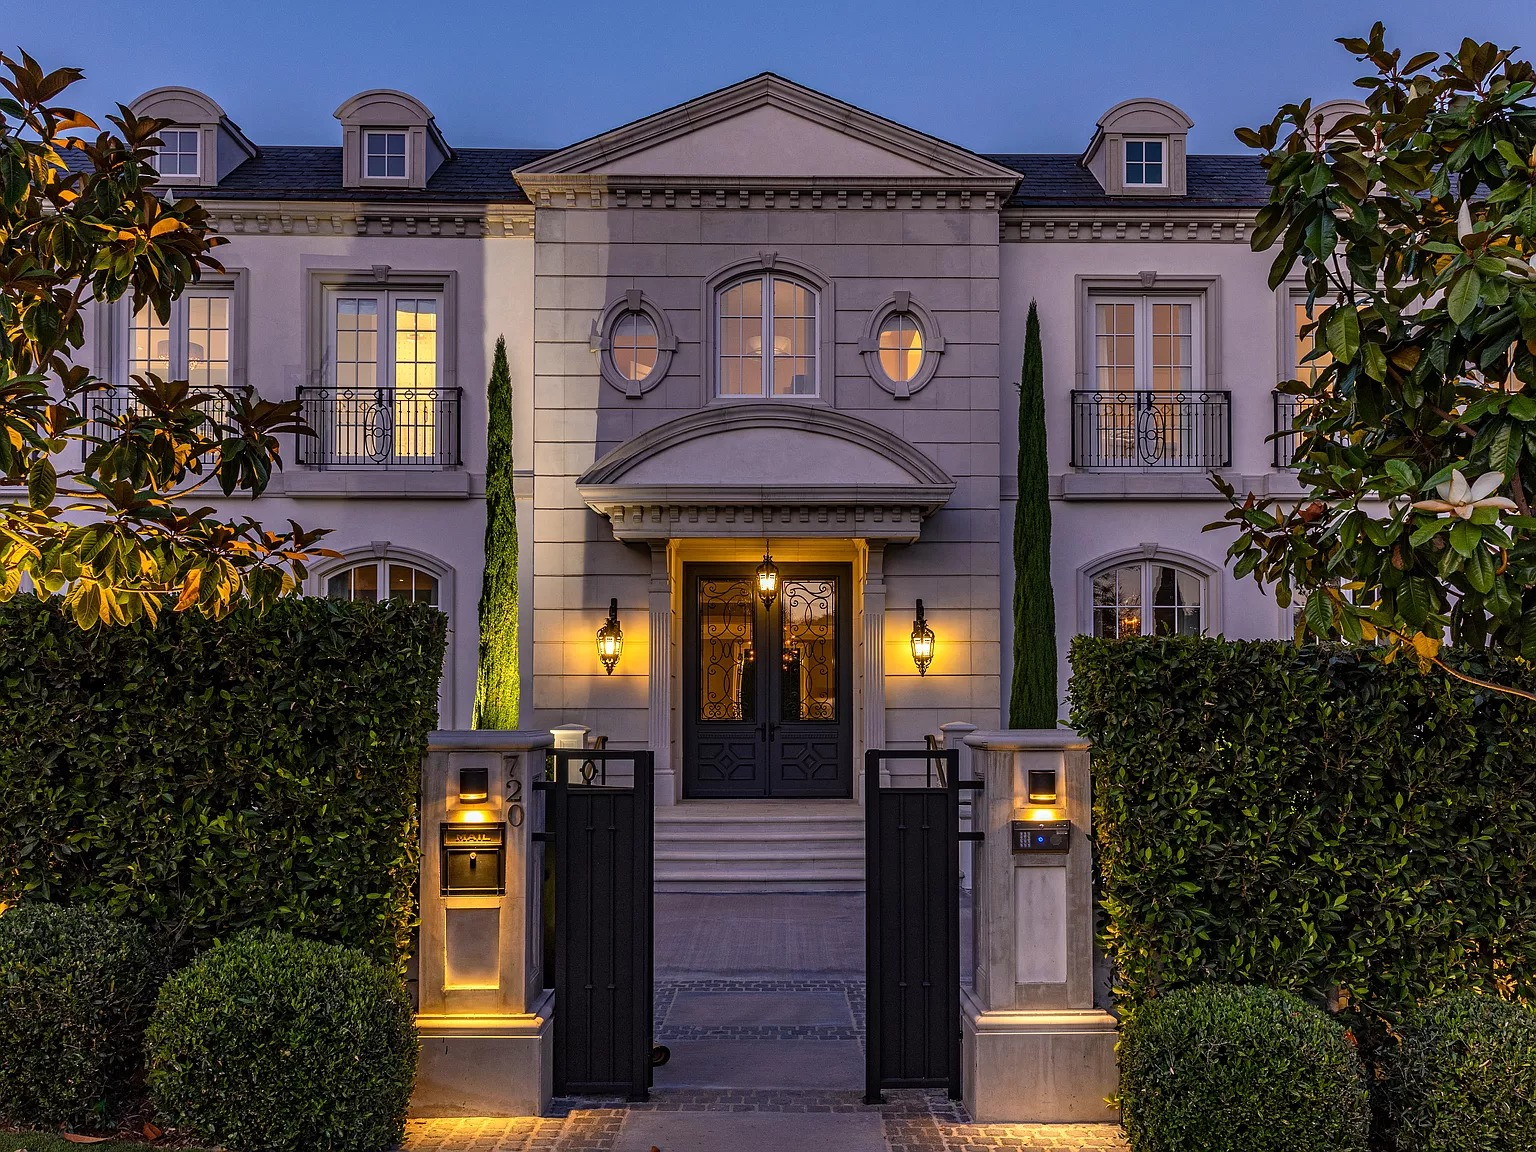 720 N Alta Dr, Beverly Hills, CA 90210